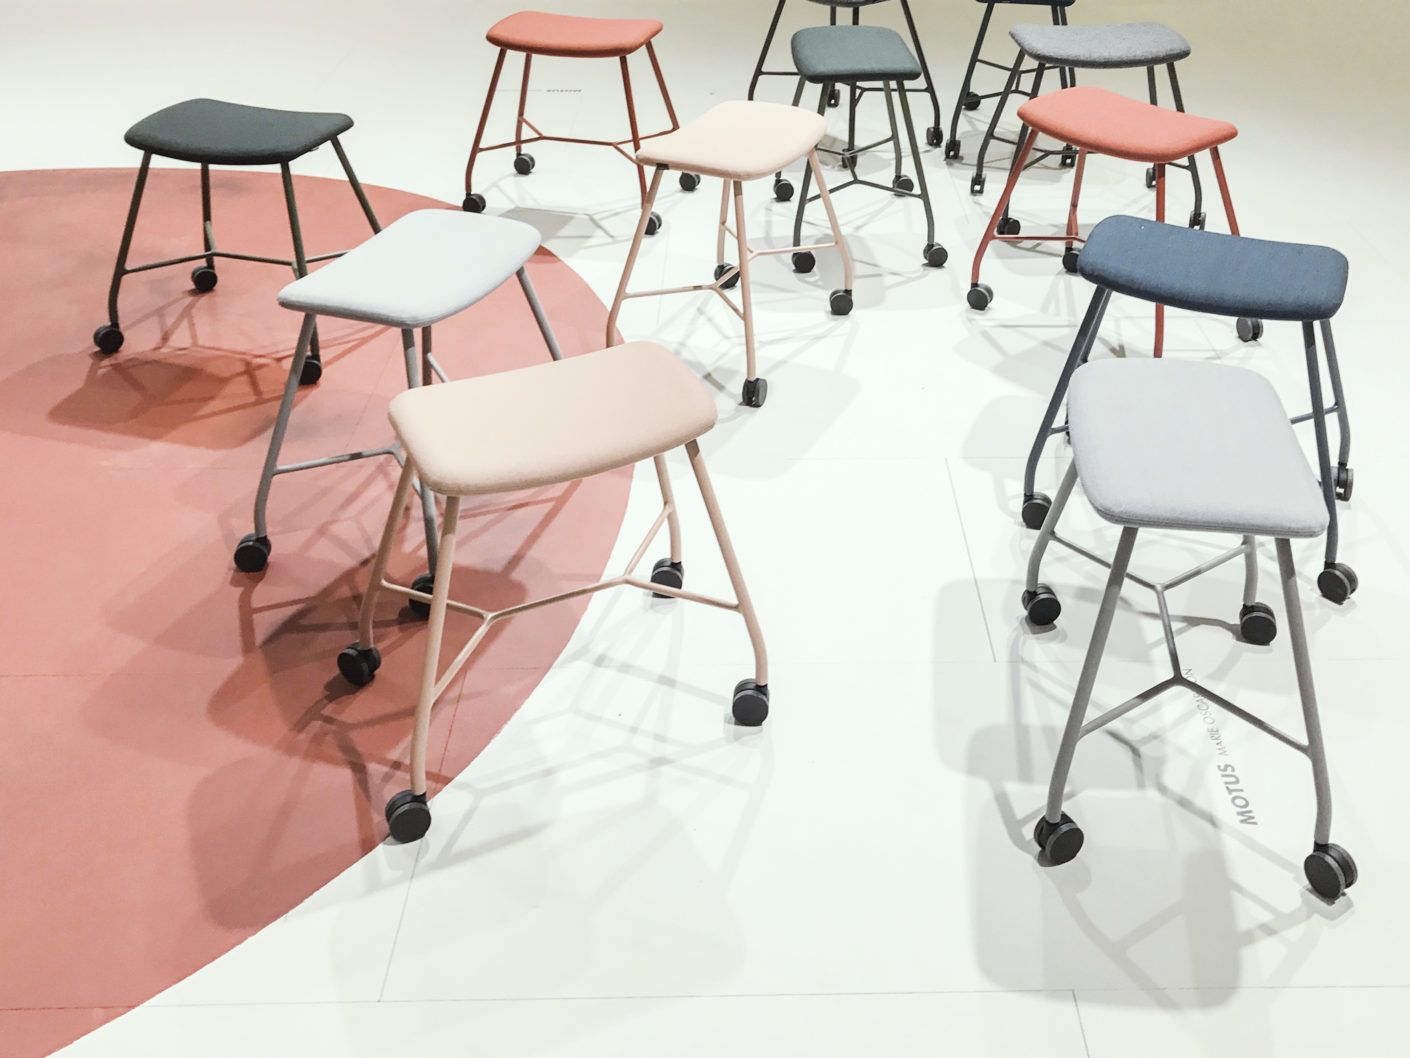 Stockholm, Furniture and Light Fair 2018, Materia, Motus, Stylepark